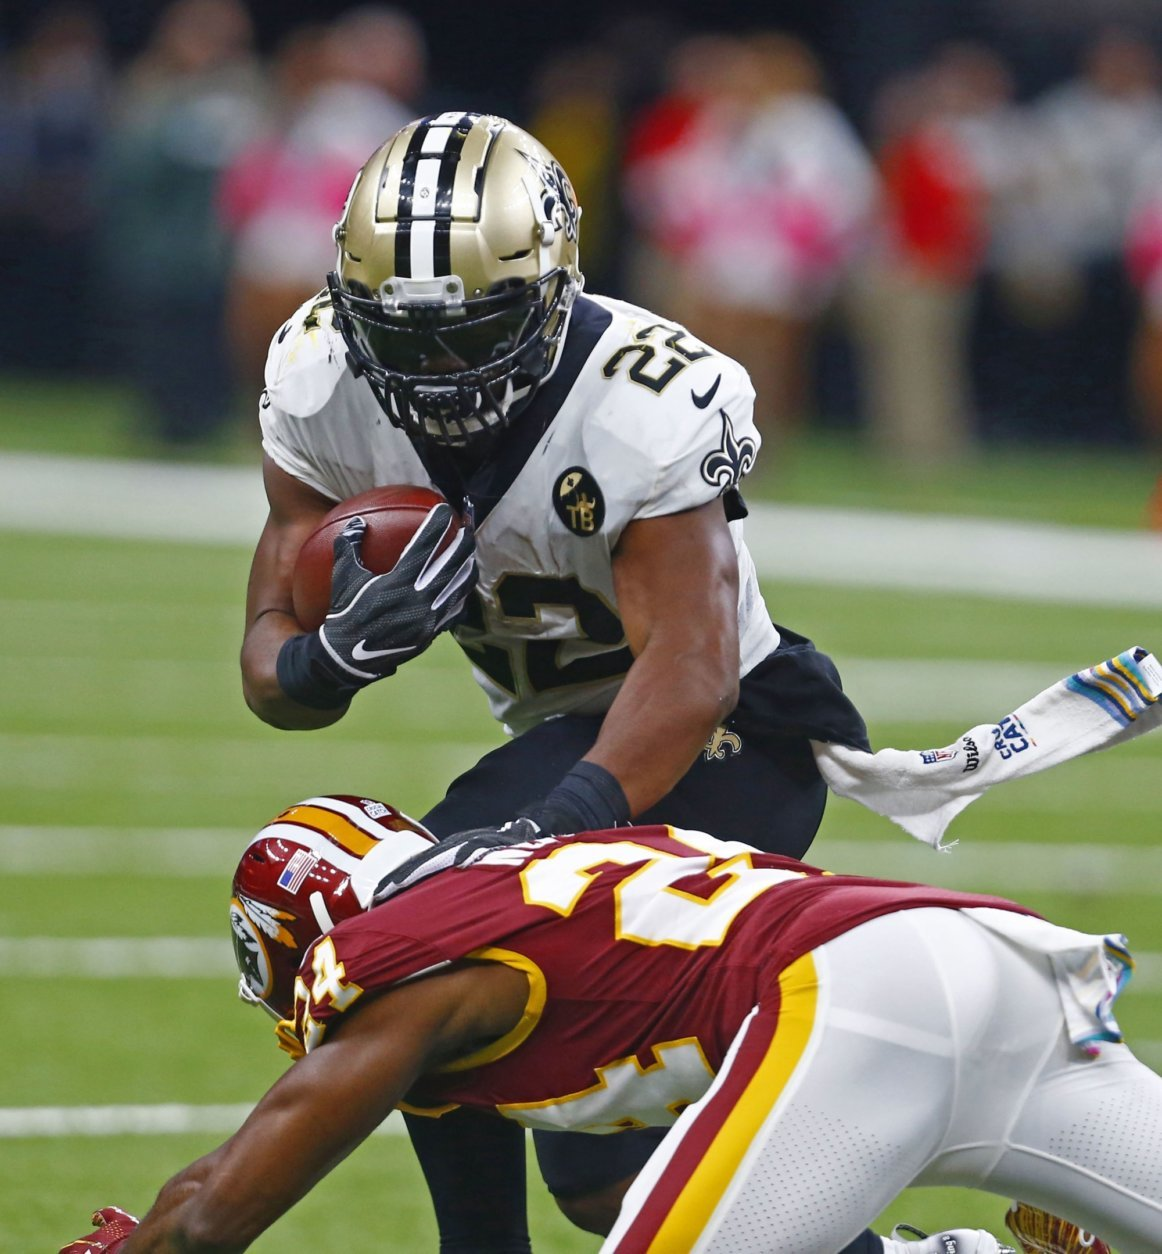 New Orleans Saints running back Mark Ingram (22) carries against Washington Redskins cornerback Josh Norman (24) in the first half of an NFL football game in New Orleans, Monday, Oct. 8, 2018. (AP Photo/Butch Dill)